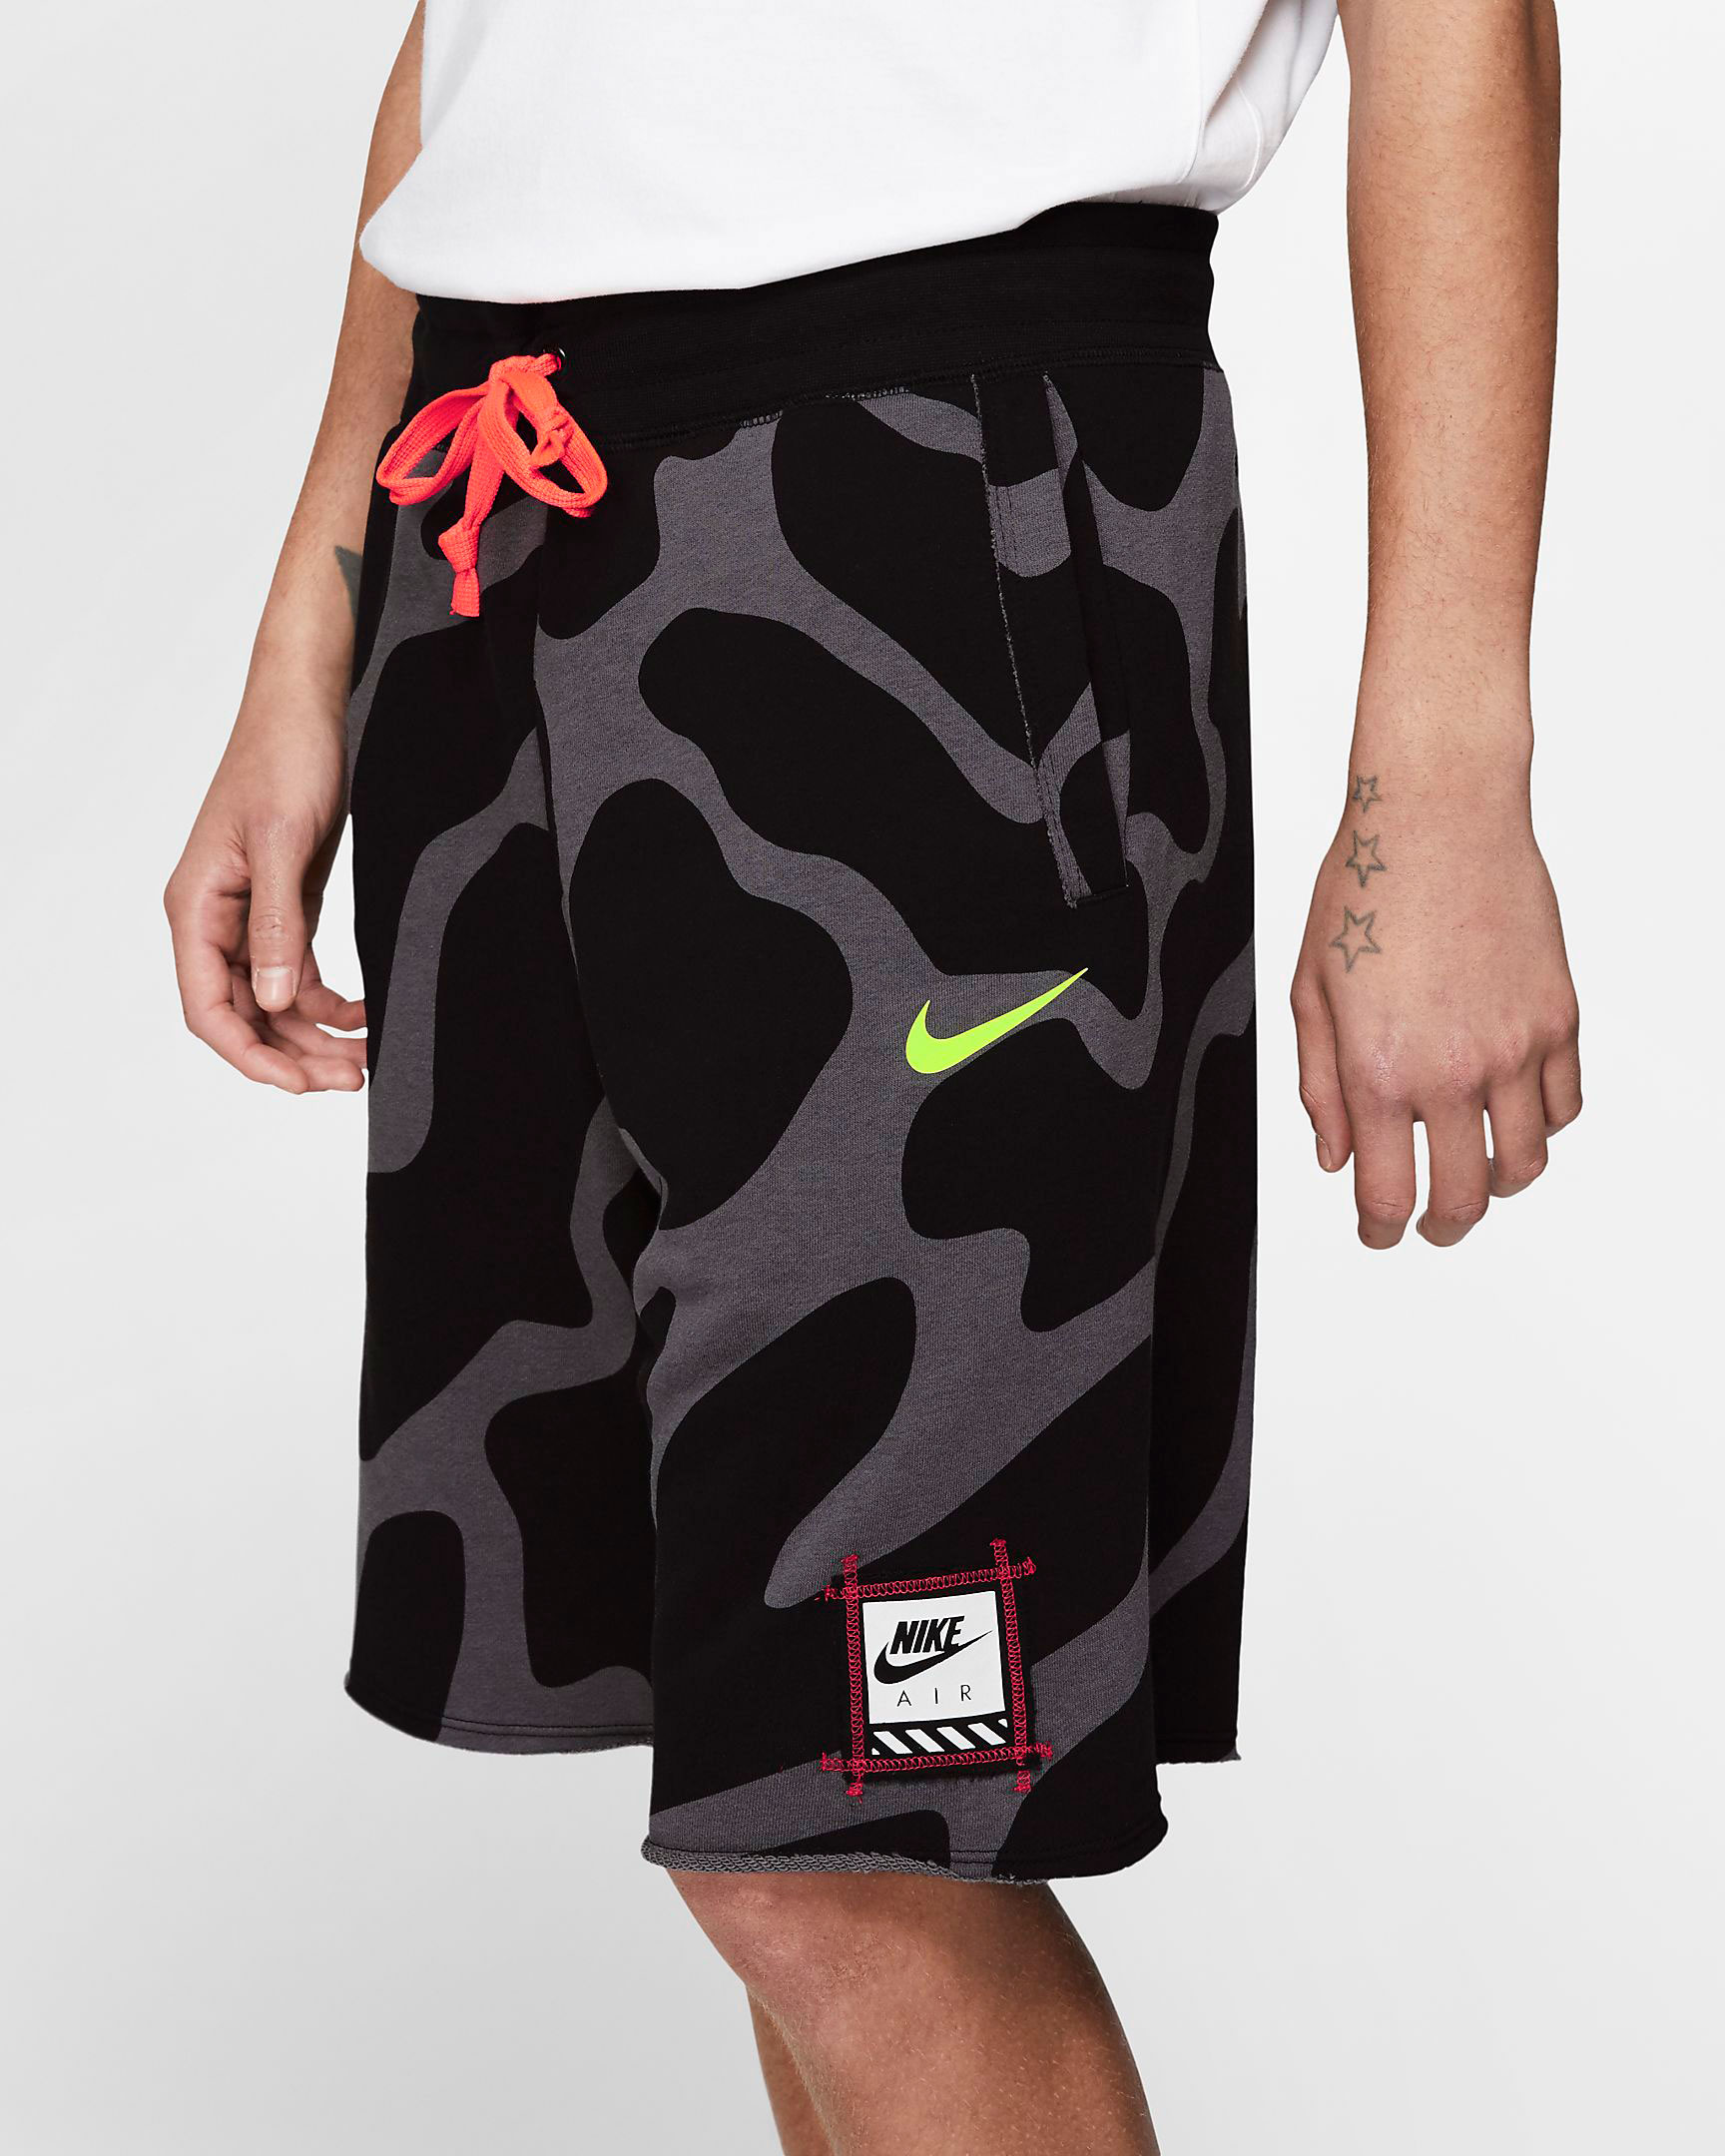 56af15bd9 Nike Air Midnight Glow Shoes and Shorts | SneakerFits.com